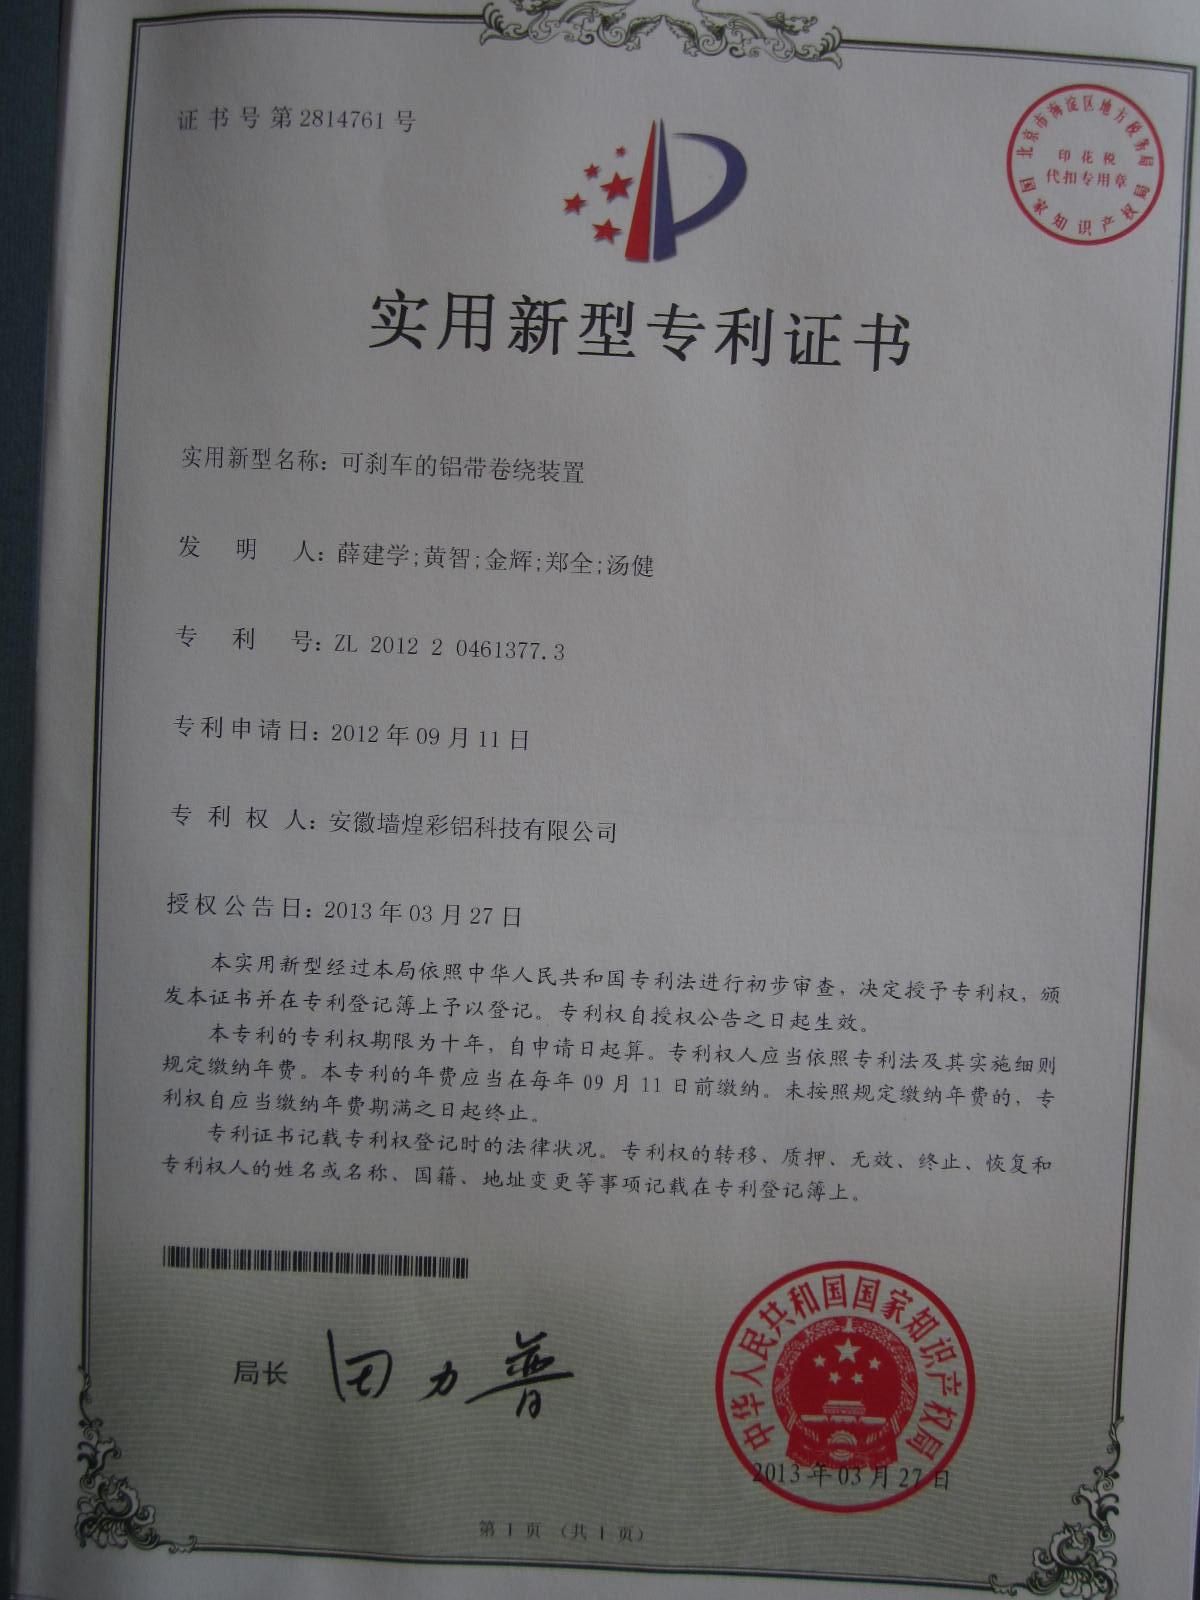 LETTER of PATENT 5